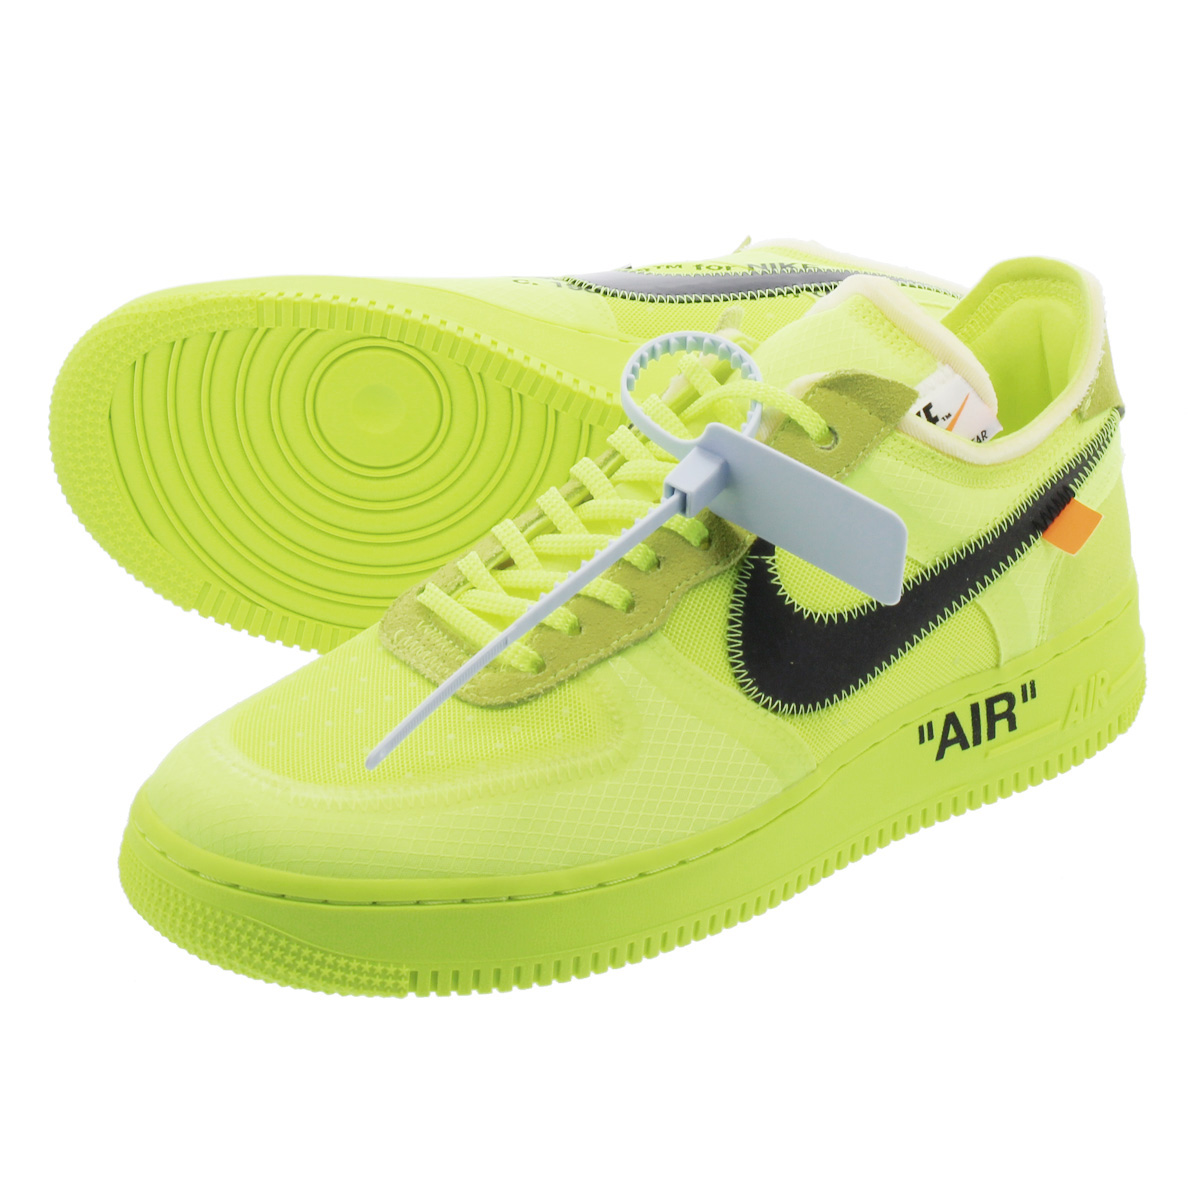 848e5ed8 LOWTEX PLUS: NIKE AIR FORCE 1 LOW Nike air force 1 low off-white ...